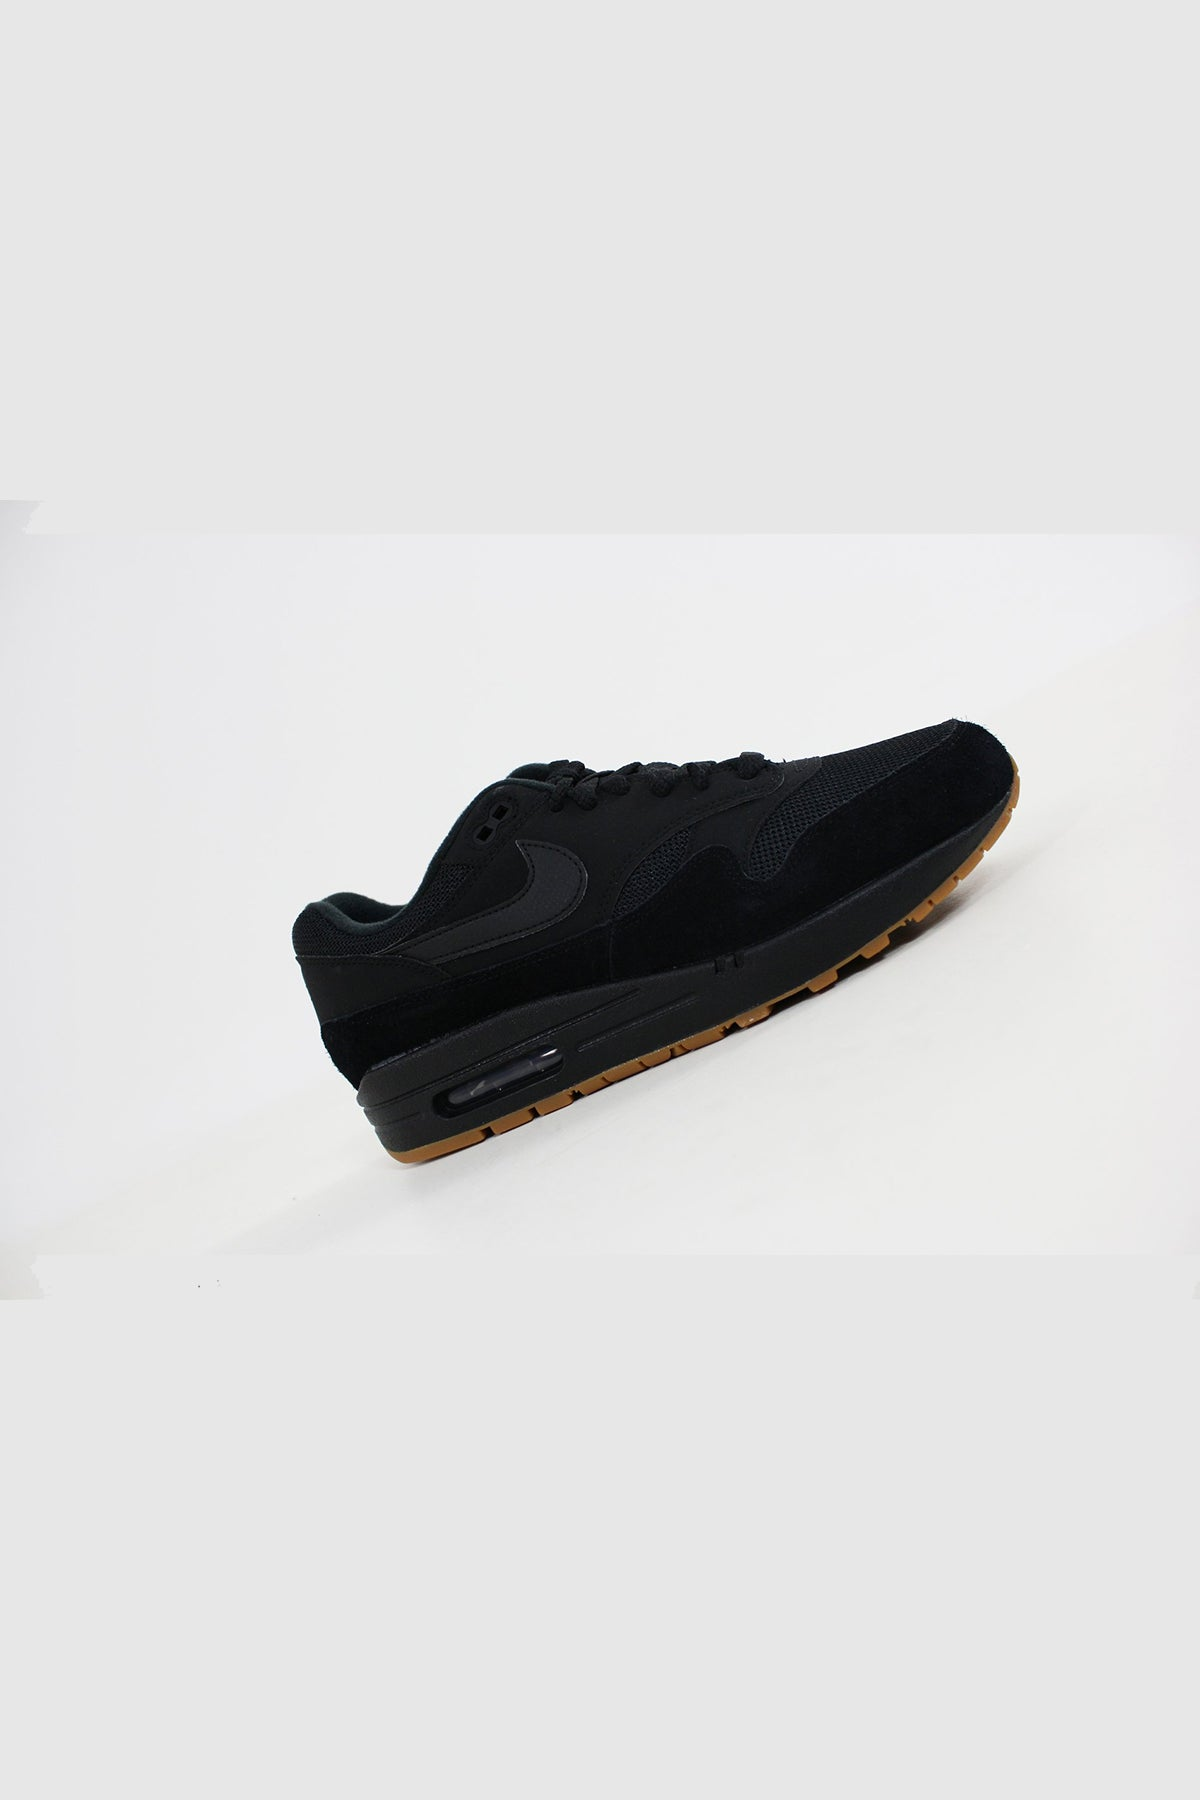 Nike - Air Max 1 (Black/ Black Gum Med Brown) AH8145-007